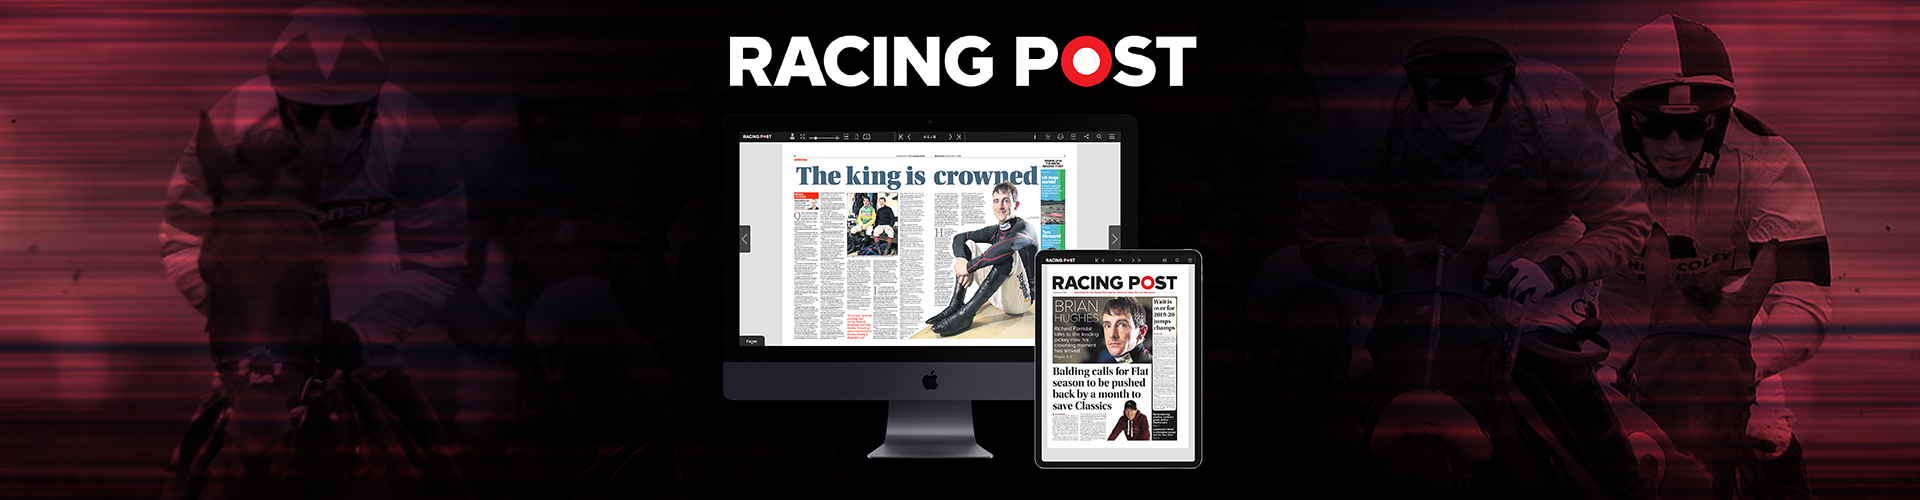 Racing Post Launch Digital-Only Newspaper with PageSuite